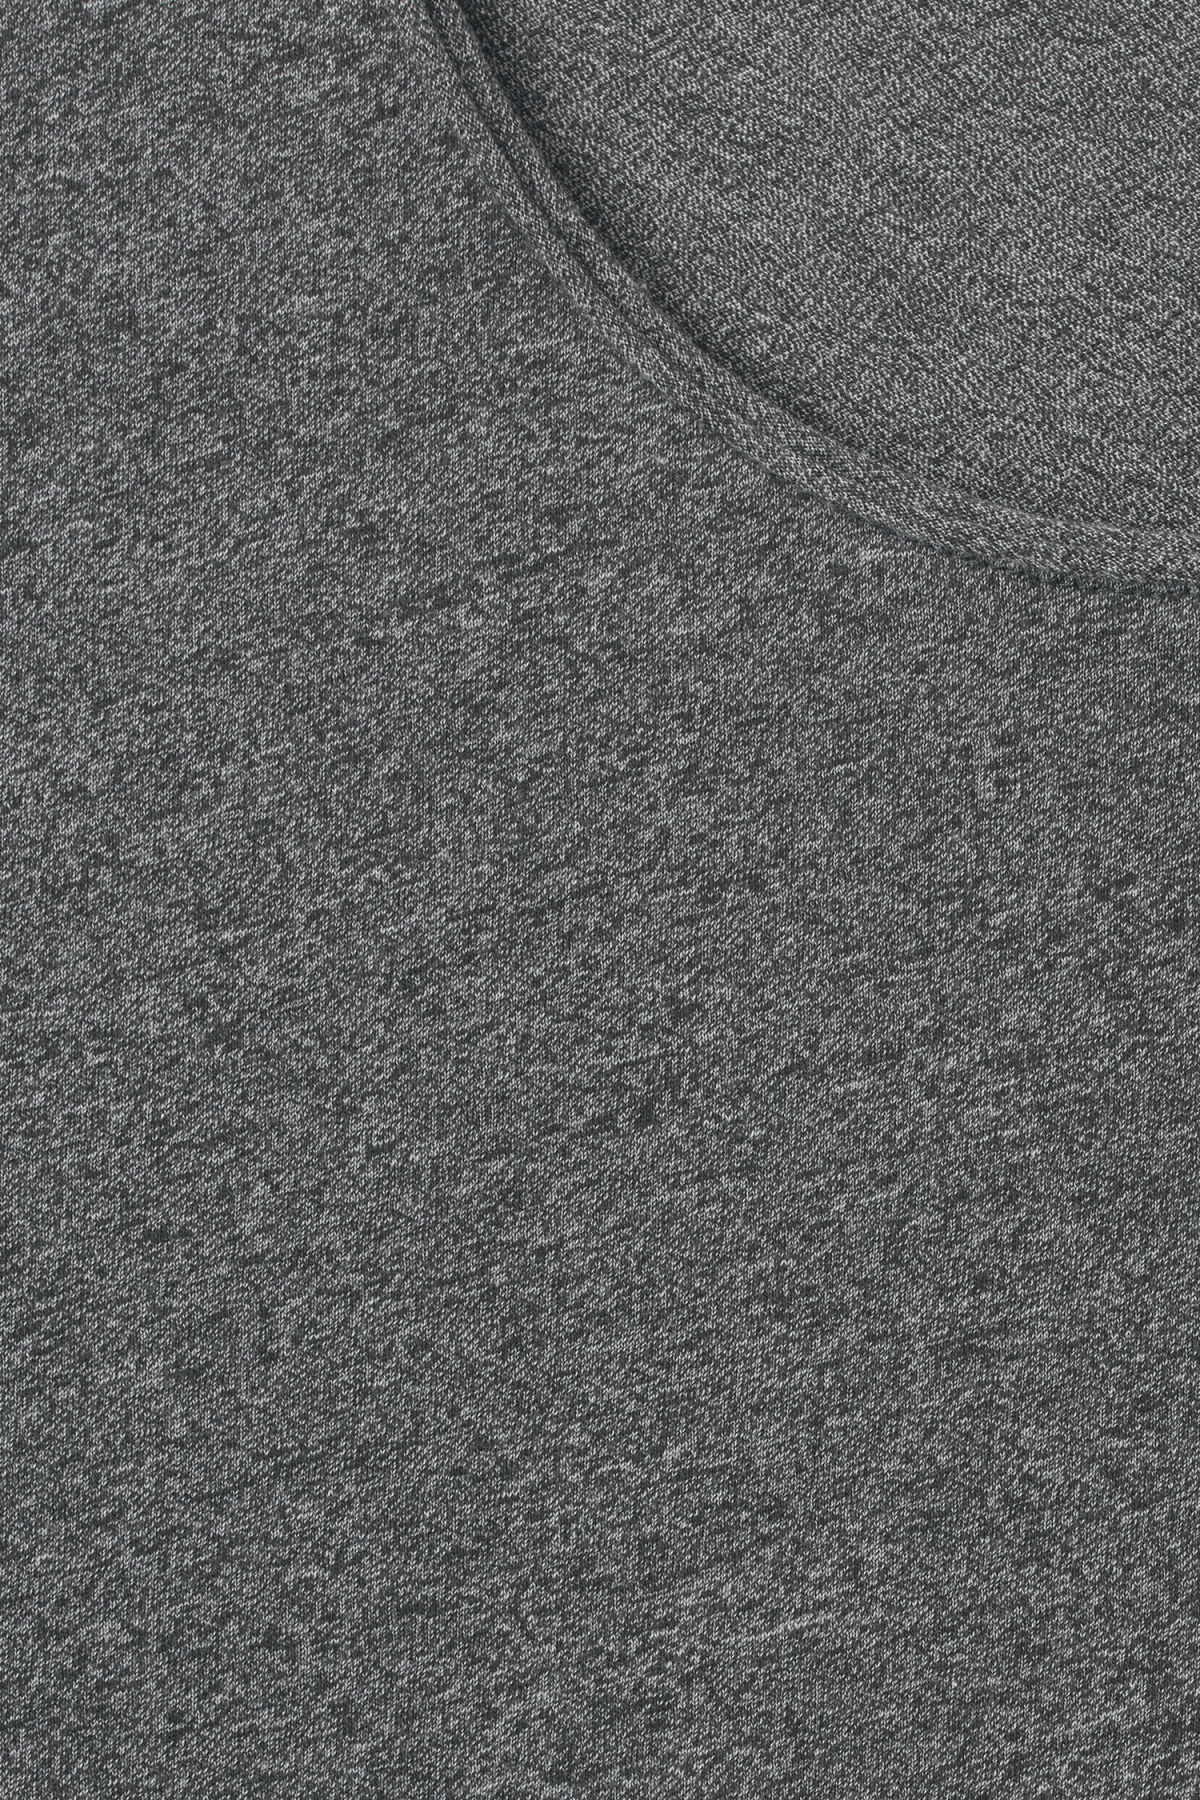 Detailed image of Weekday dark t-shirt in black